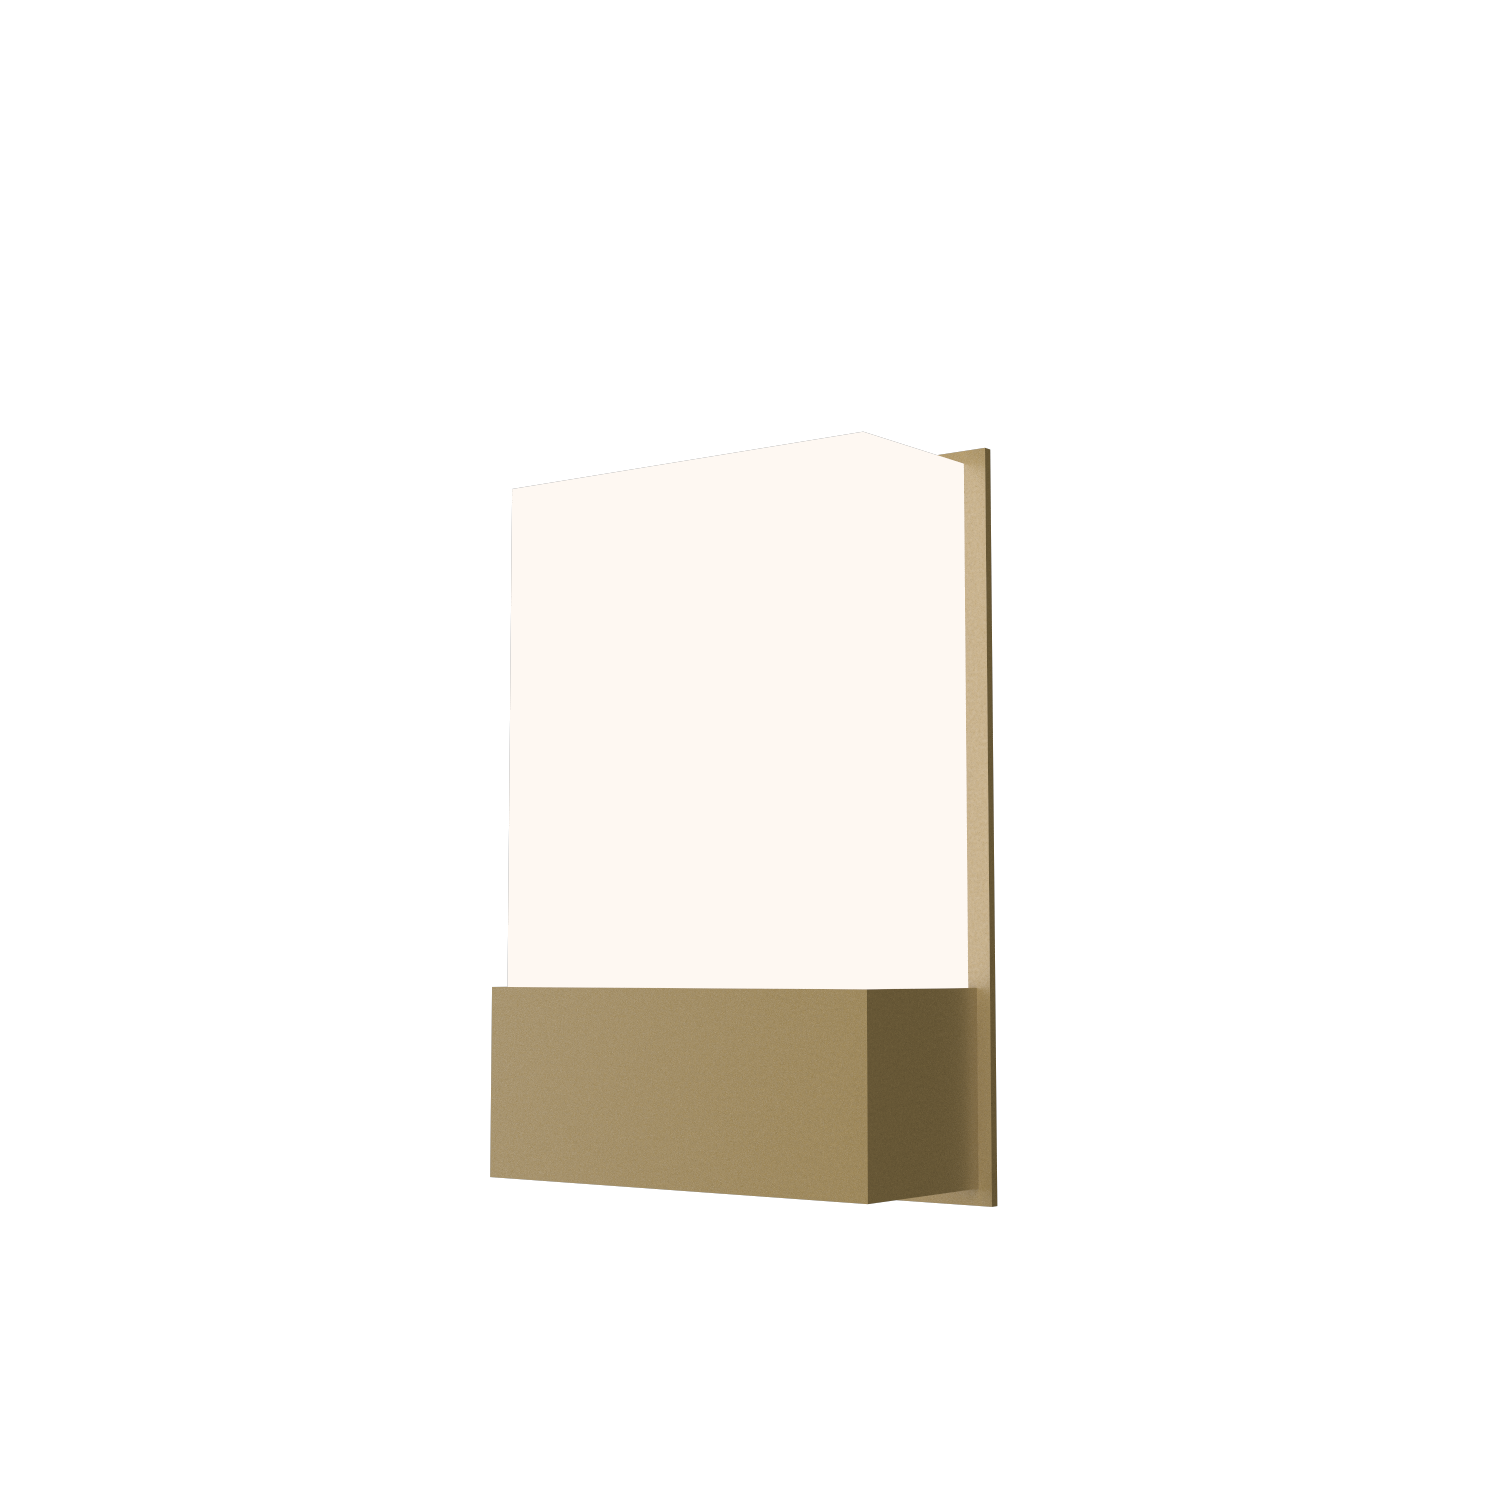 Wall Lamp Accord Clean 444 - Clean Line Accord Lighting | Pale Gold